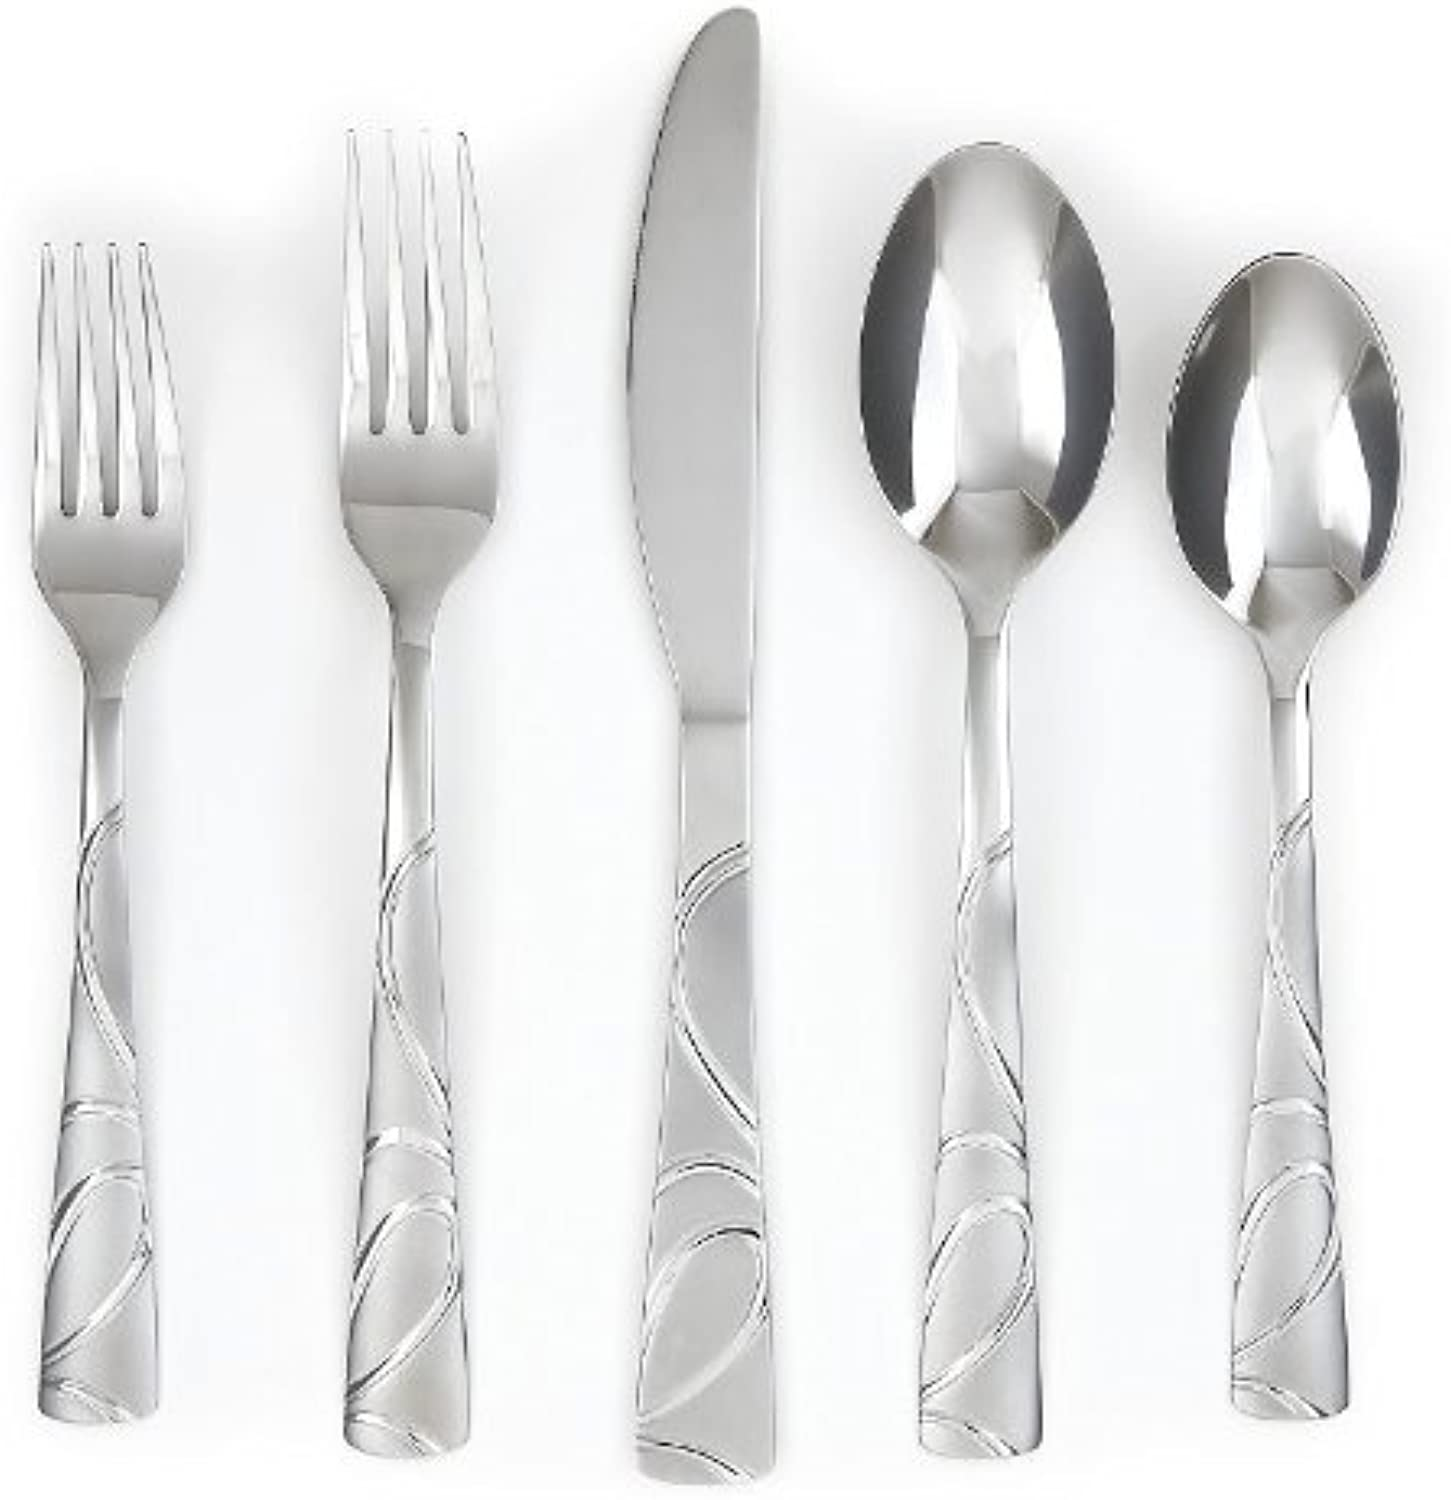 Cambridge Sasha Sand 42 Pc Flatware Set.